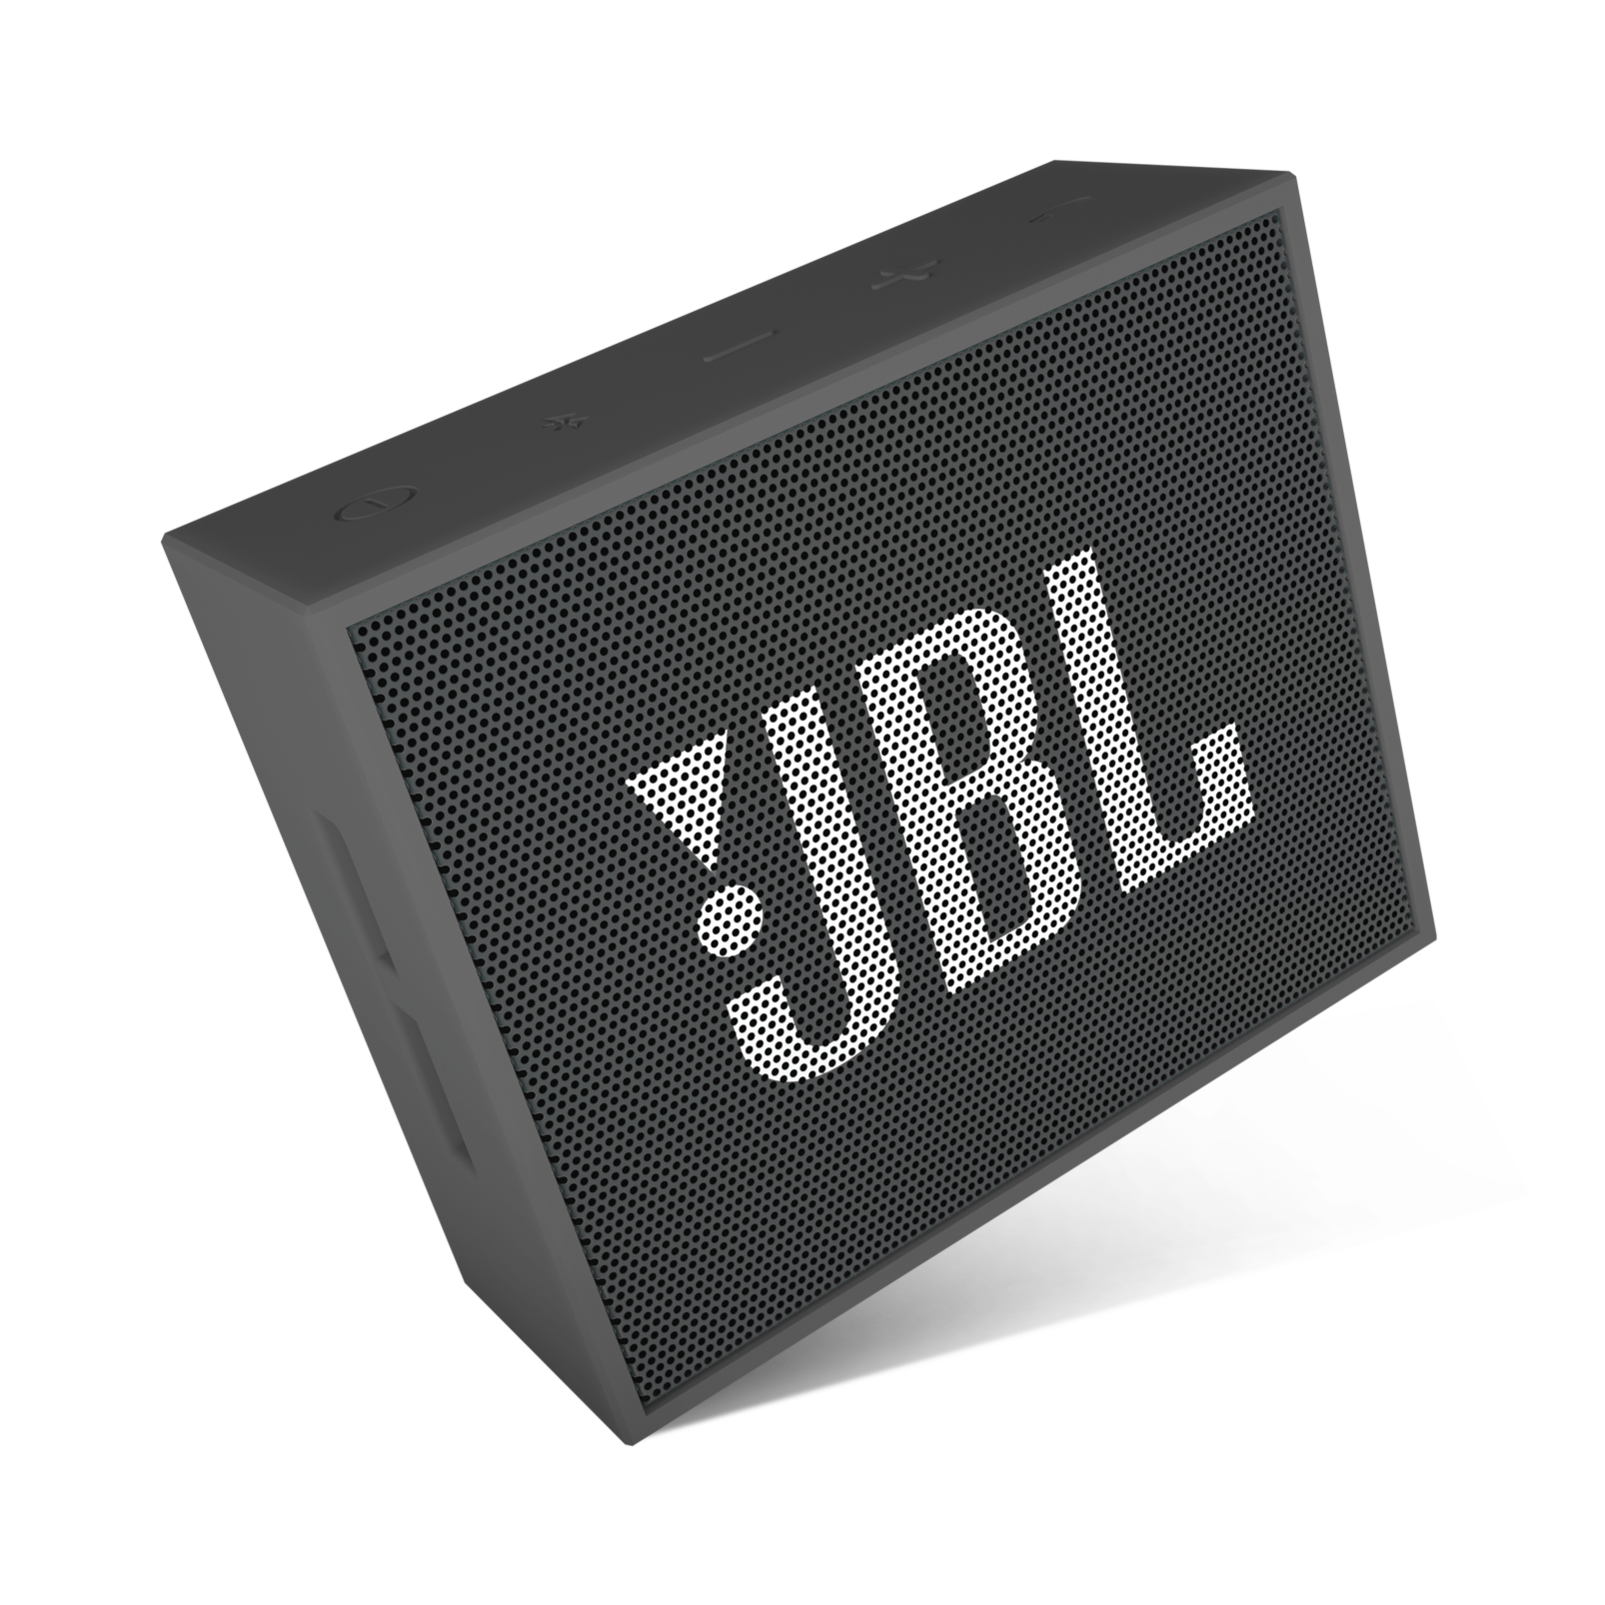 Jbl Go Full Featured Great Sounding Value Portable Speaker Battery Receiver Speakers Mono Sub Amplifier And Subwoofer